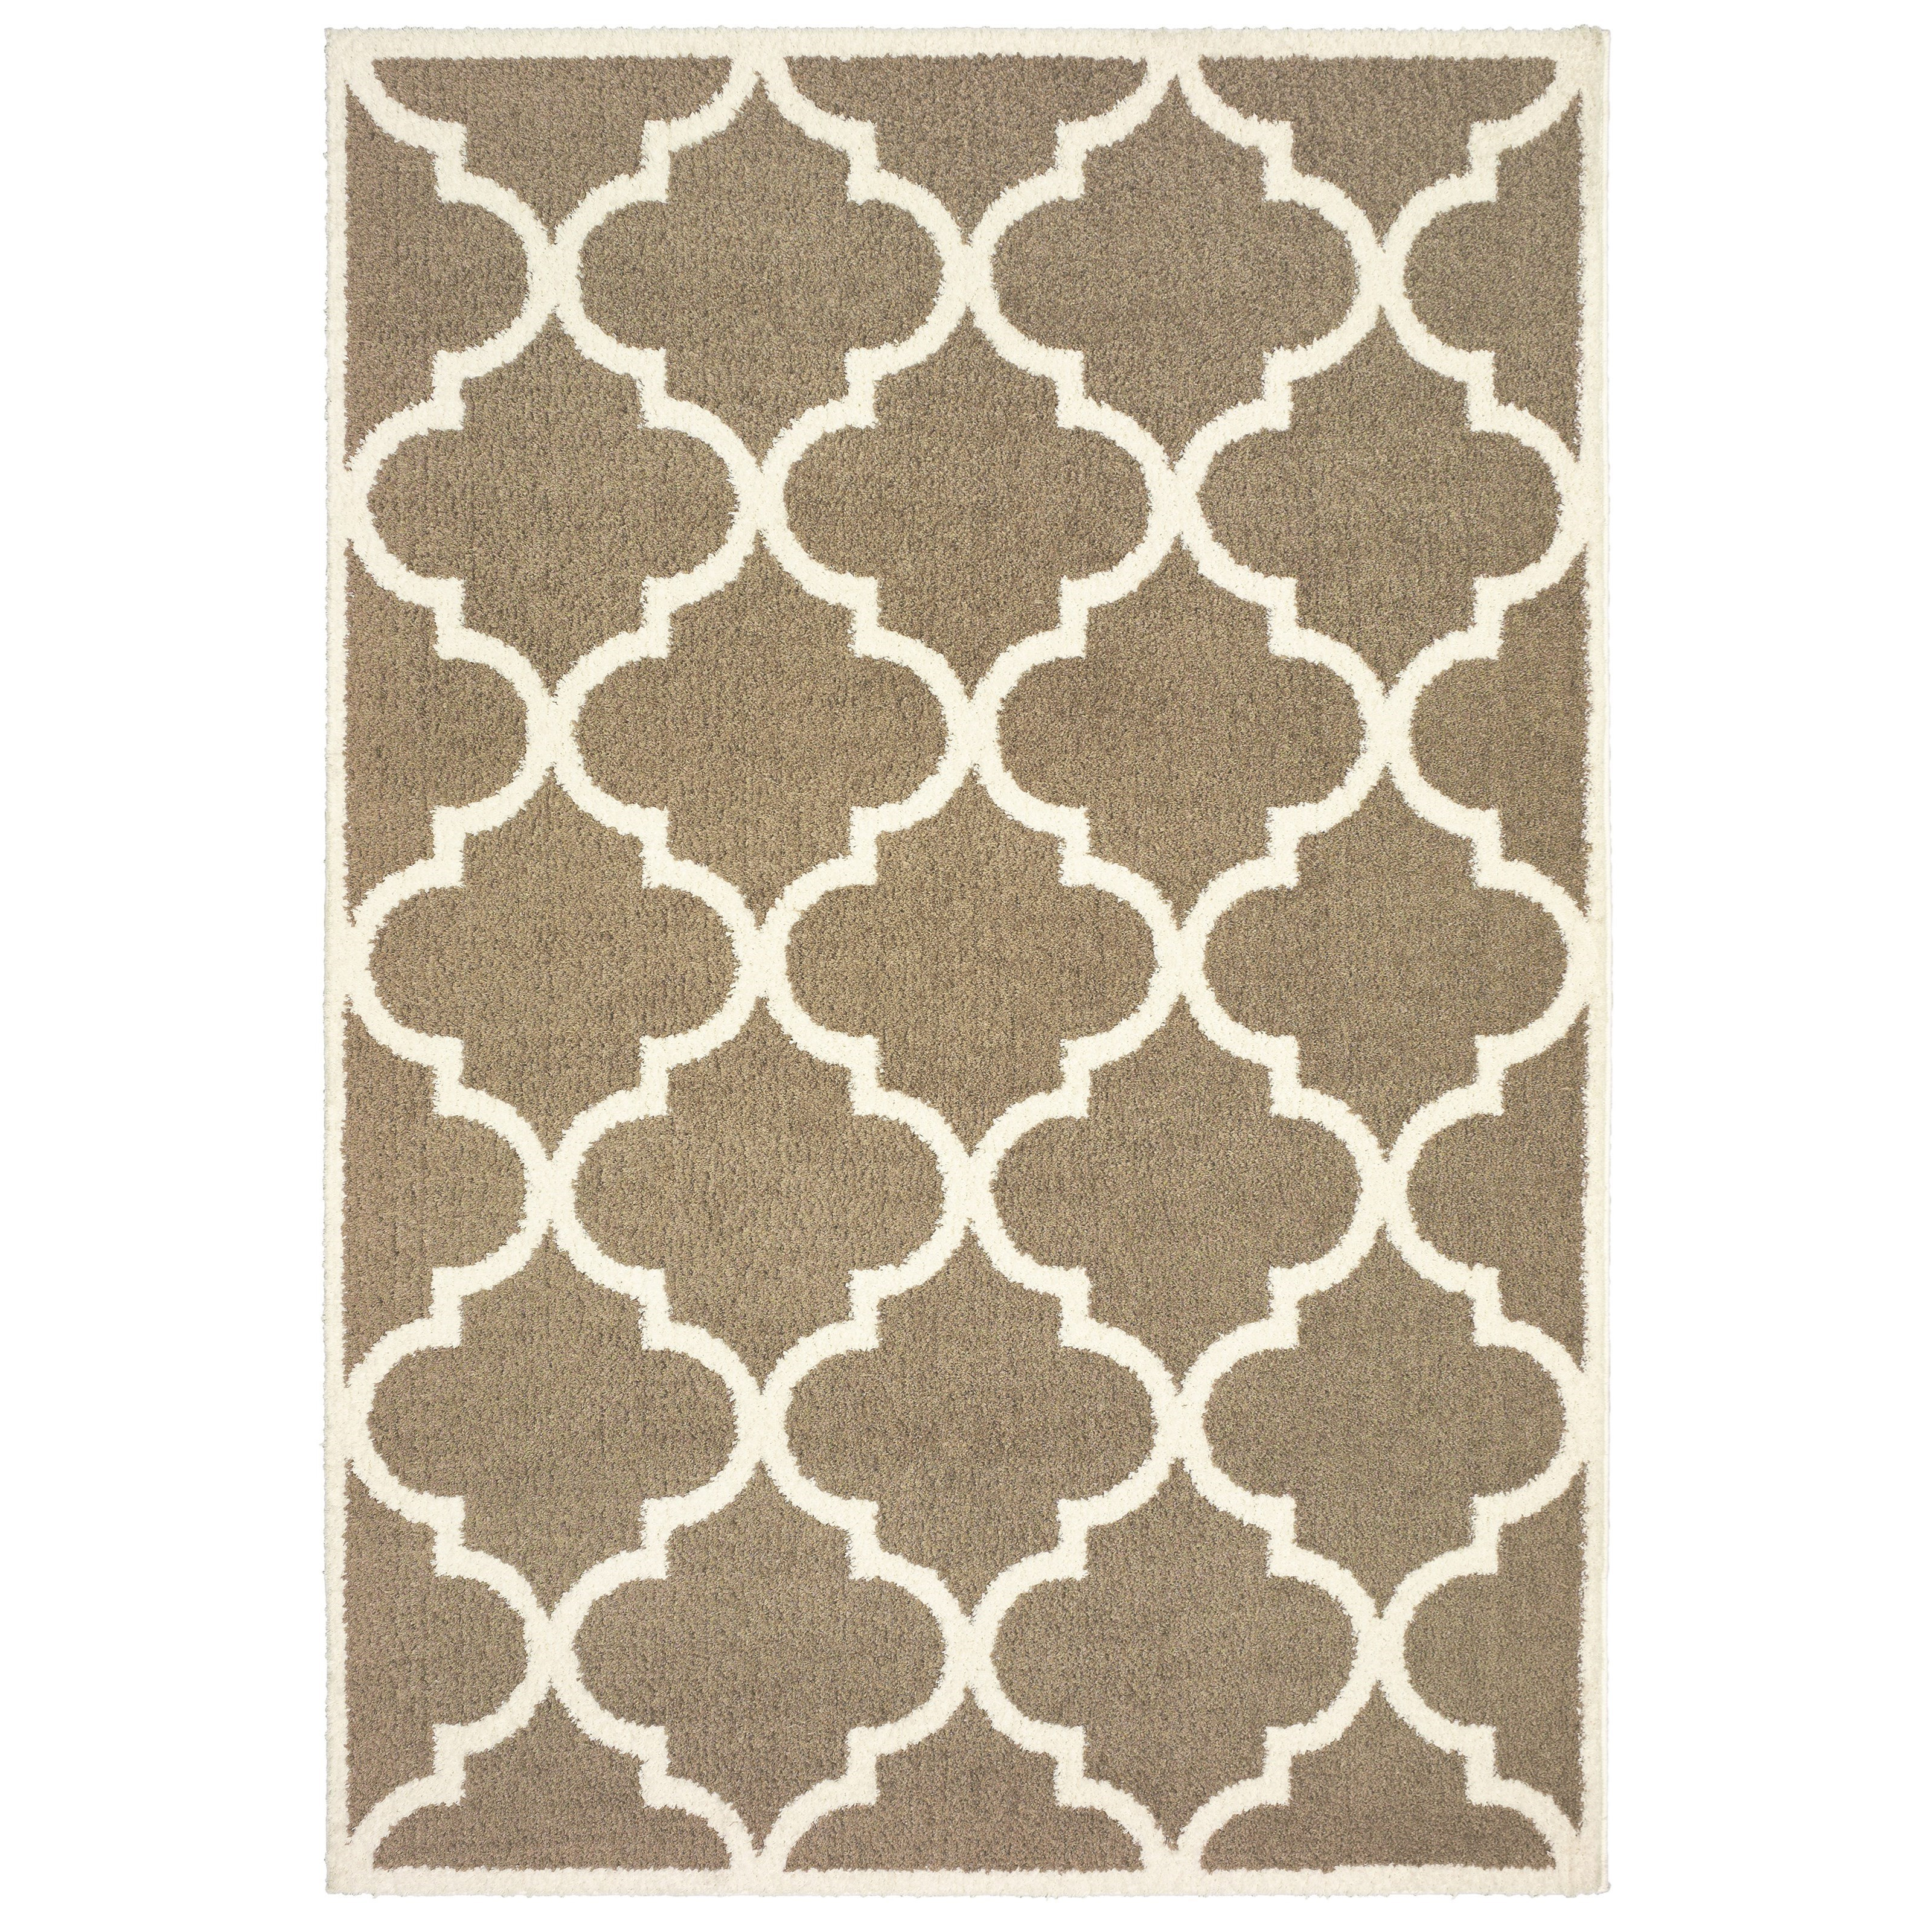 Verona 5x7 Rug by Oriental Weavers at Red Knot